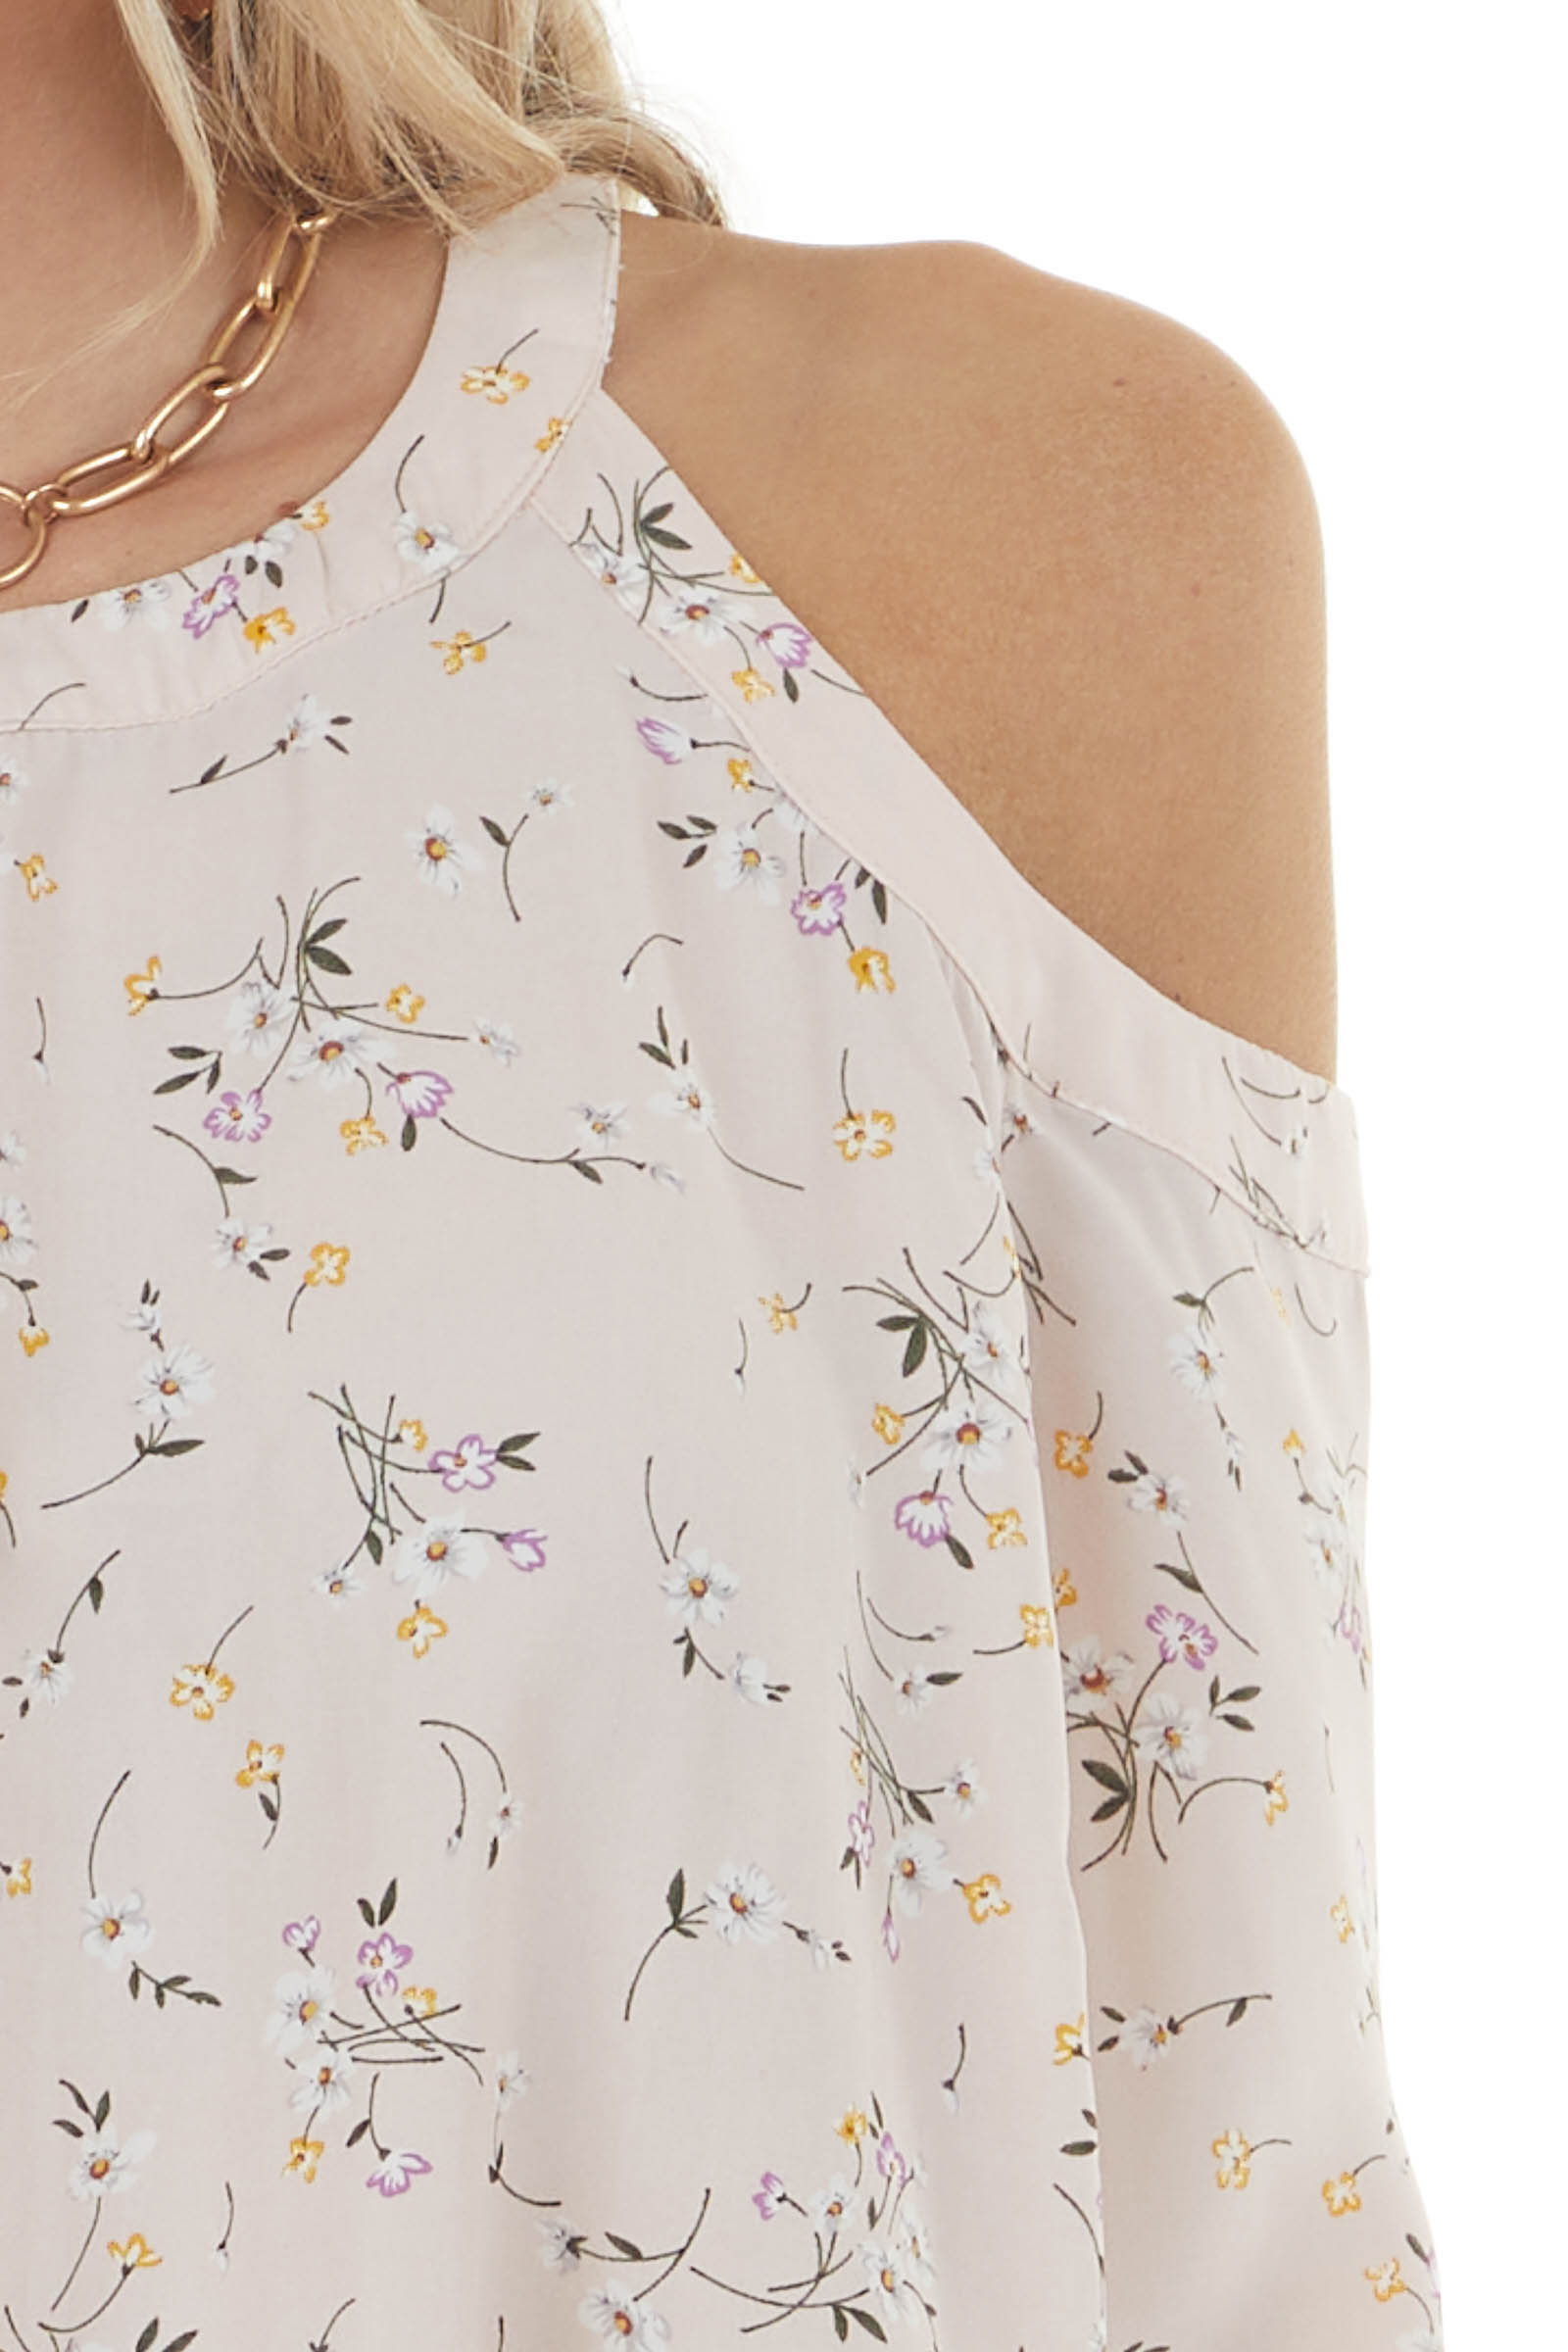 Blush Floral Print Cold Shoulder Blouse with 3/4 Sleeves